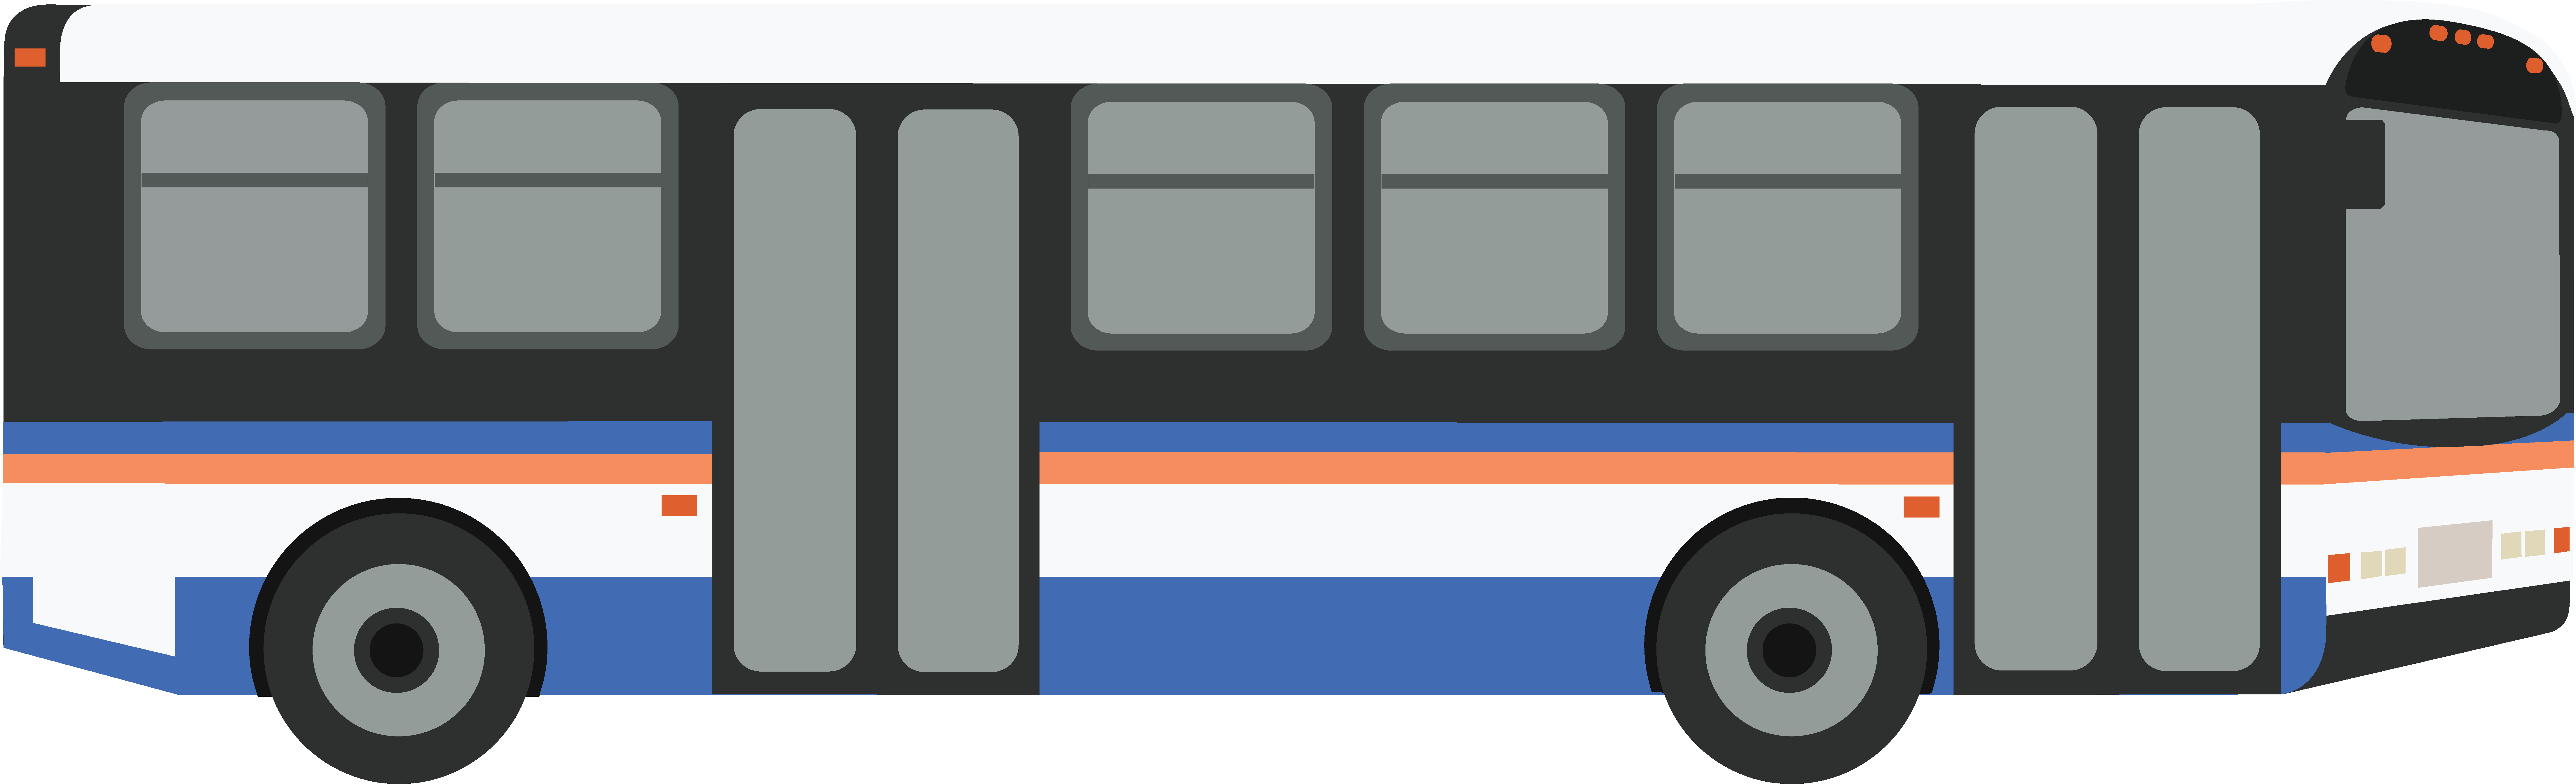 City Bus Side View PNG - 54581